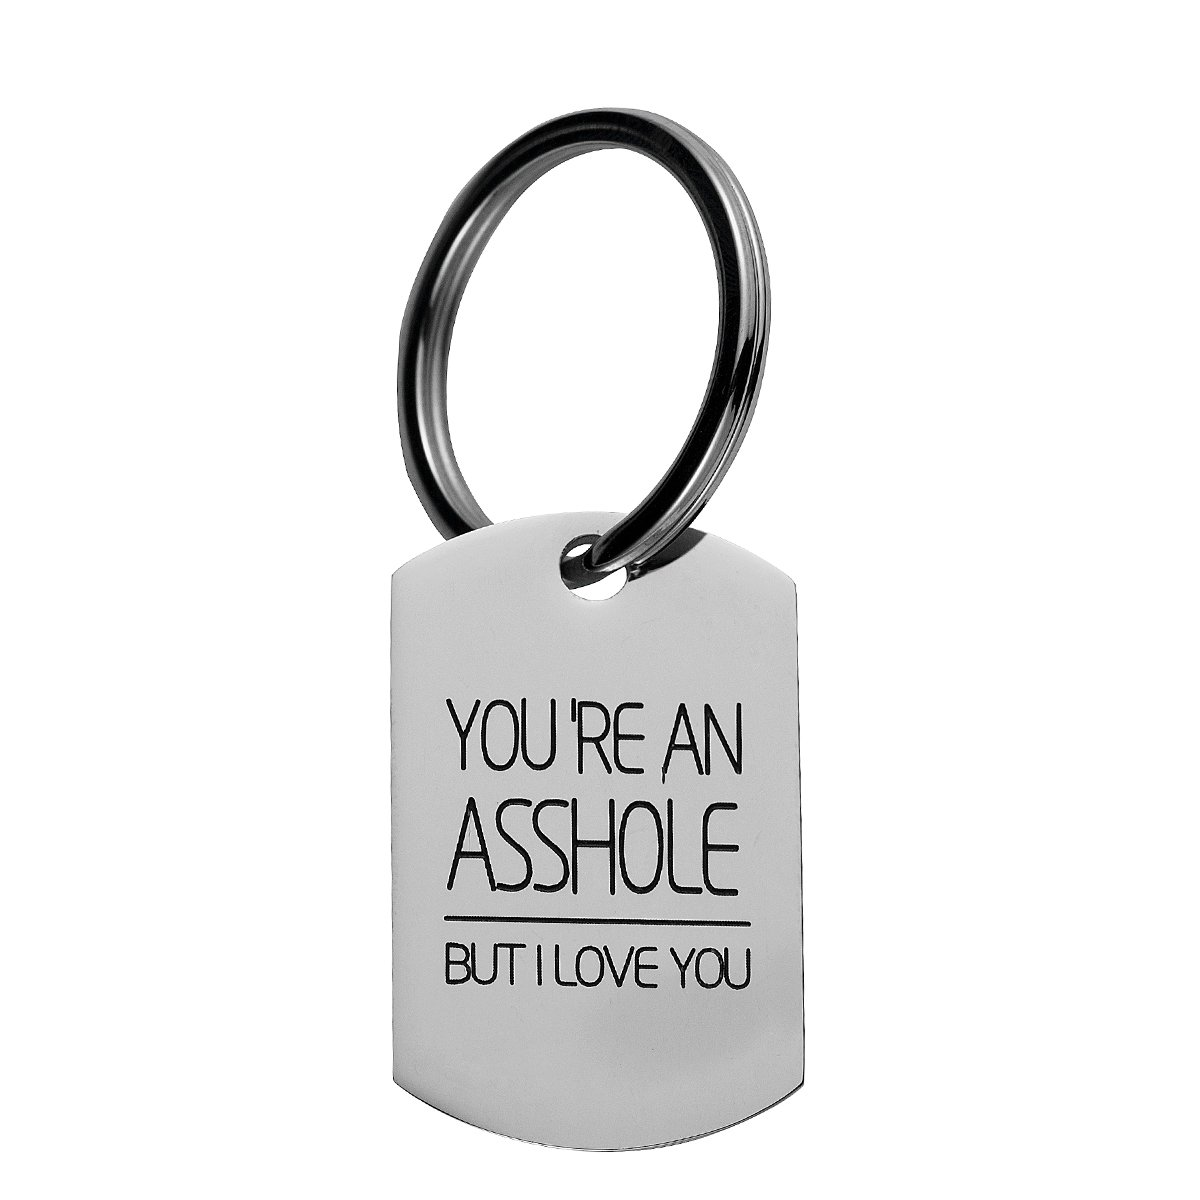 omodofo Valentine's Day Funny Keychain Dog Tag Charm Keyring Couples Love Lettering (You're An Asshole But I Love You)